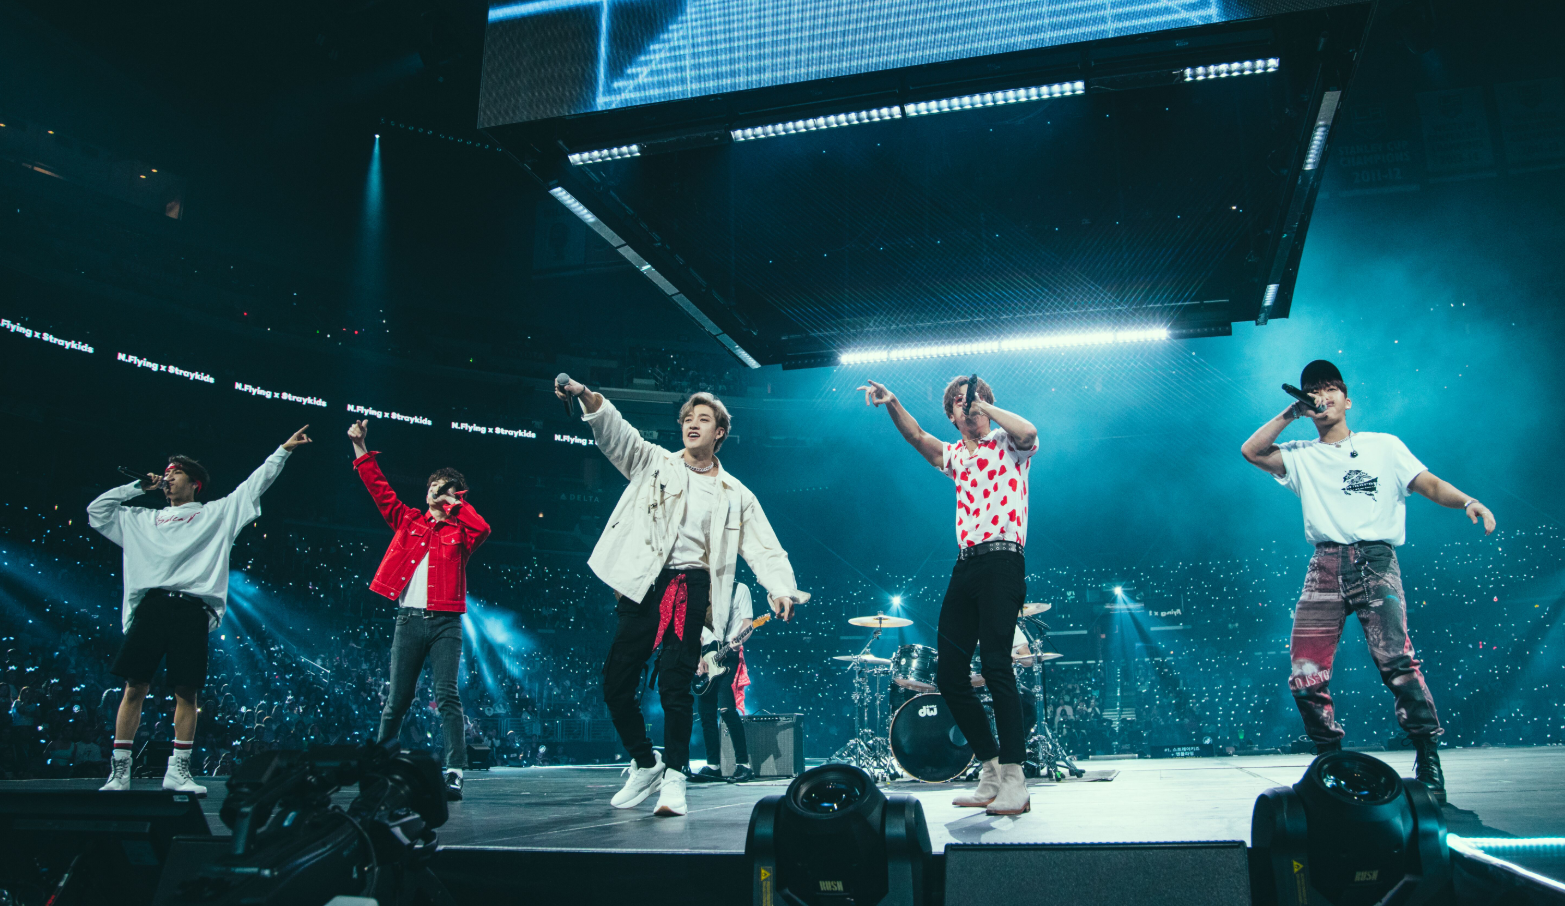 Live Recap: KCON LA 2019 – Staples Center, LA (18.08.2019)